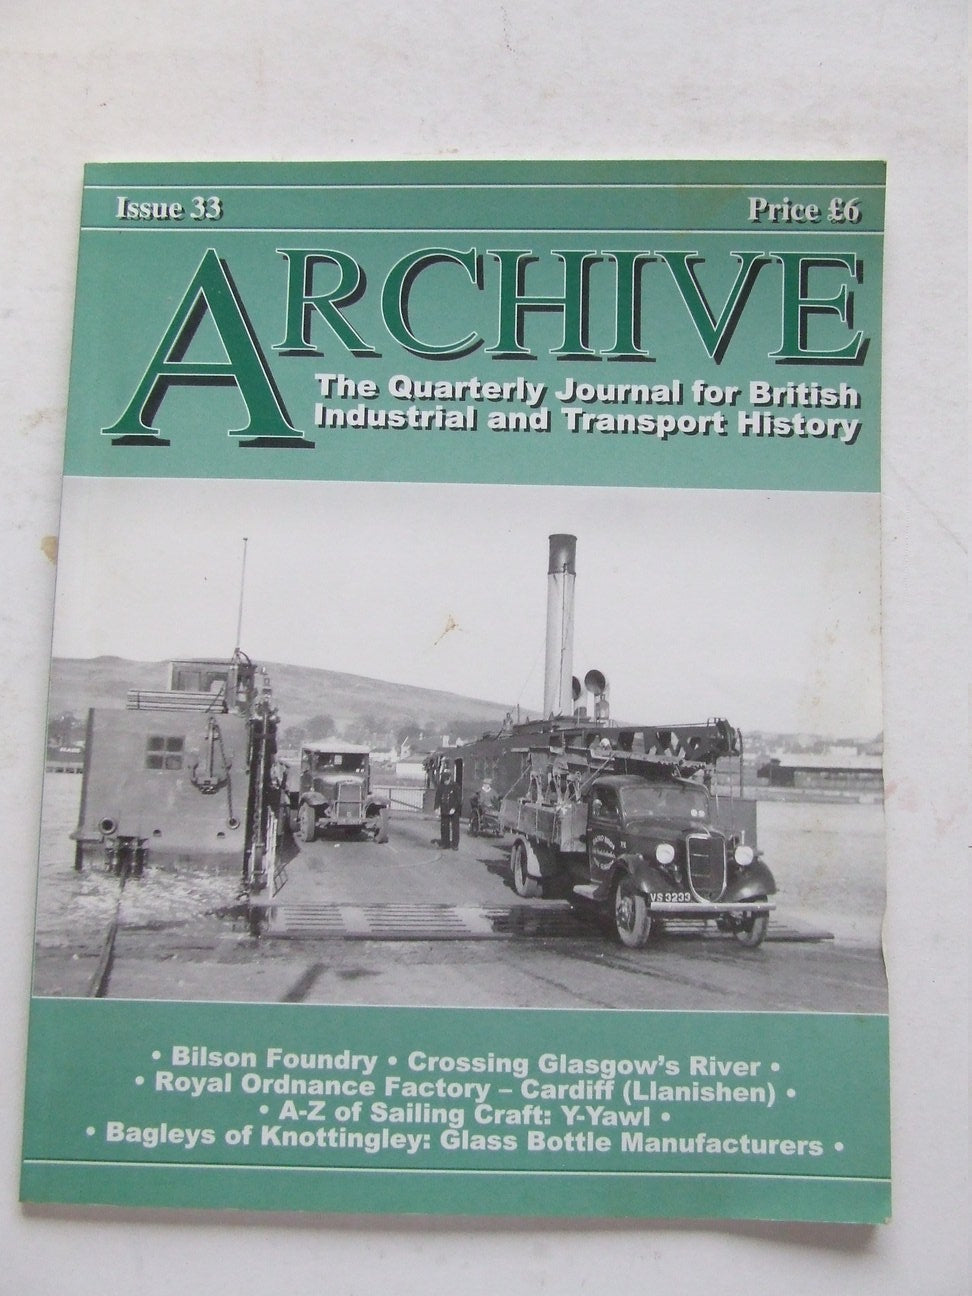 Archive, the quarterly journal for British industrial and transport history. issue 33